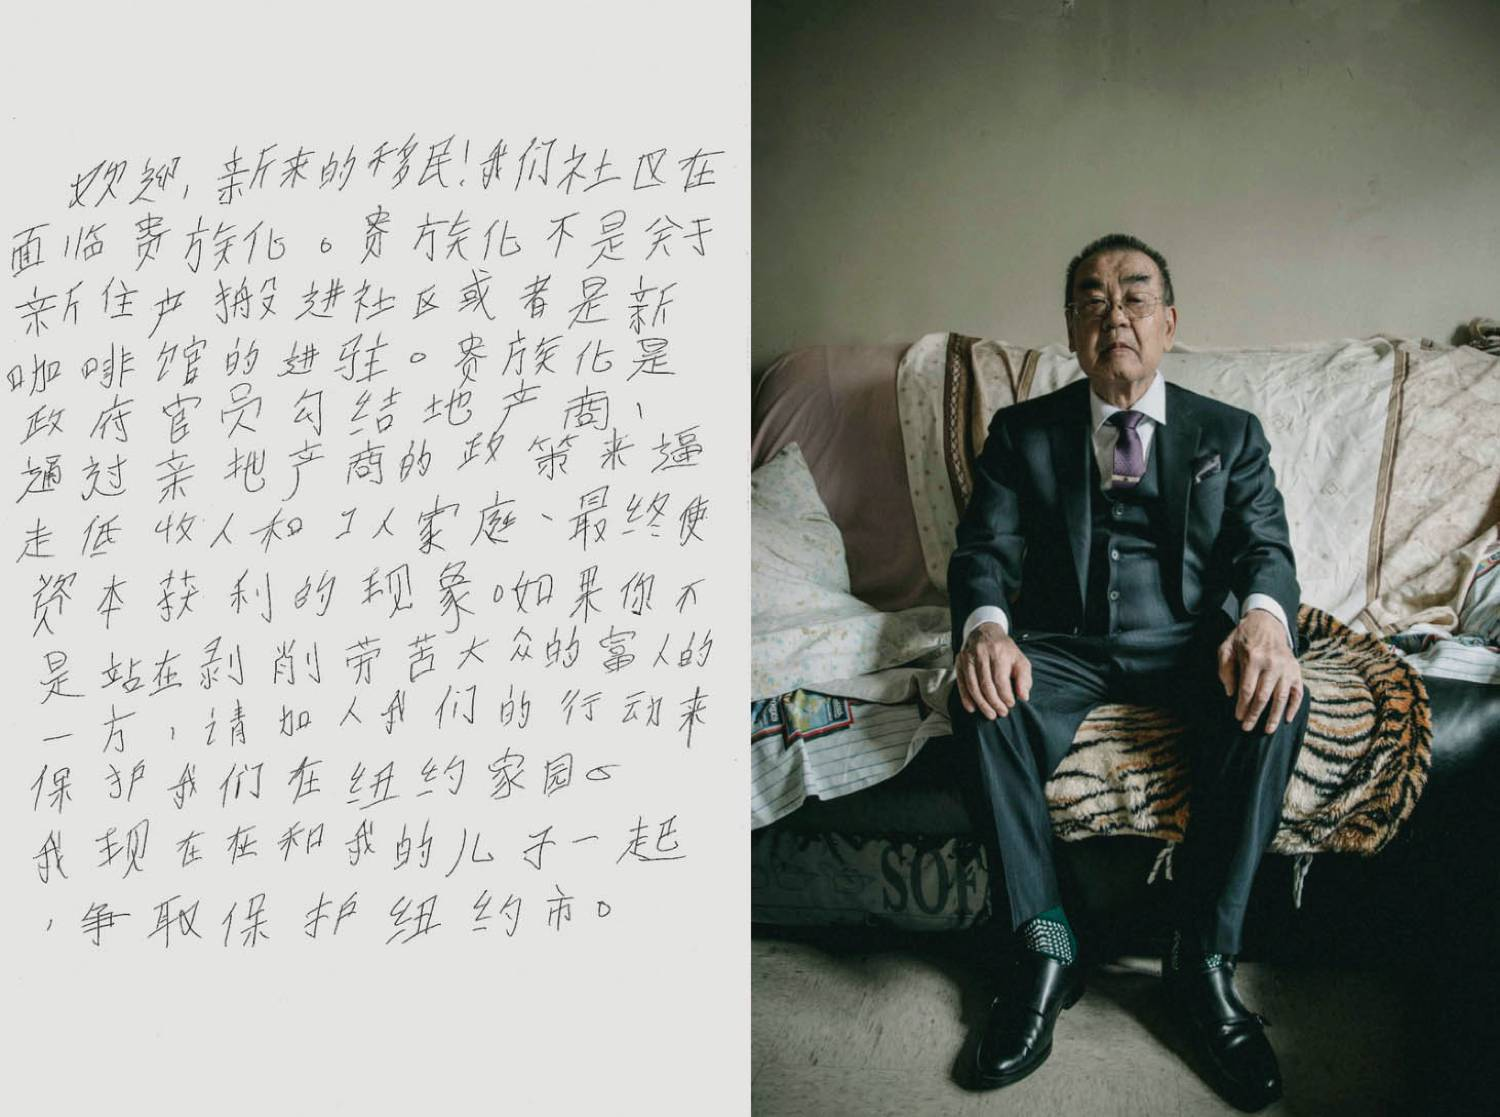 Photos: Haruka Sakaguchi's portrait of an Asian businessman sitting on the sofa in his home.